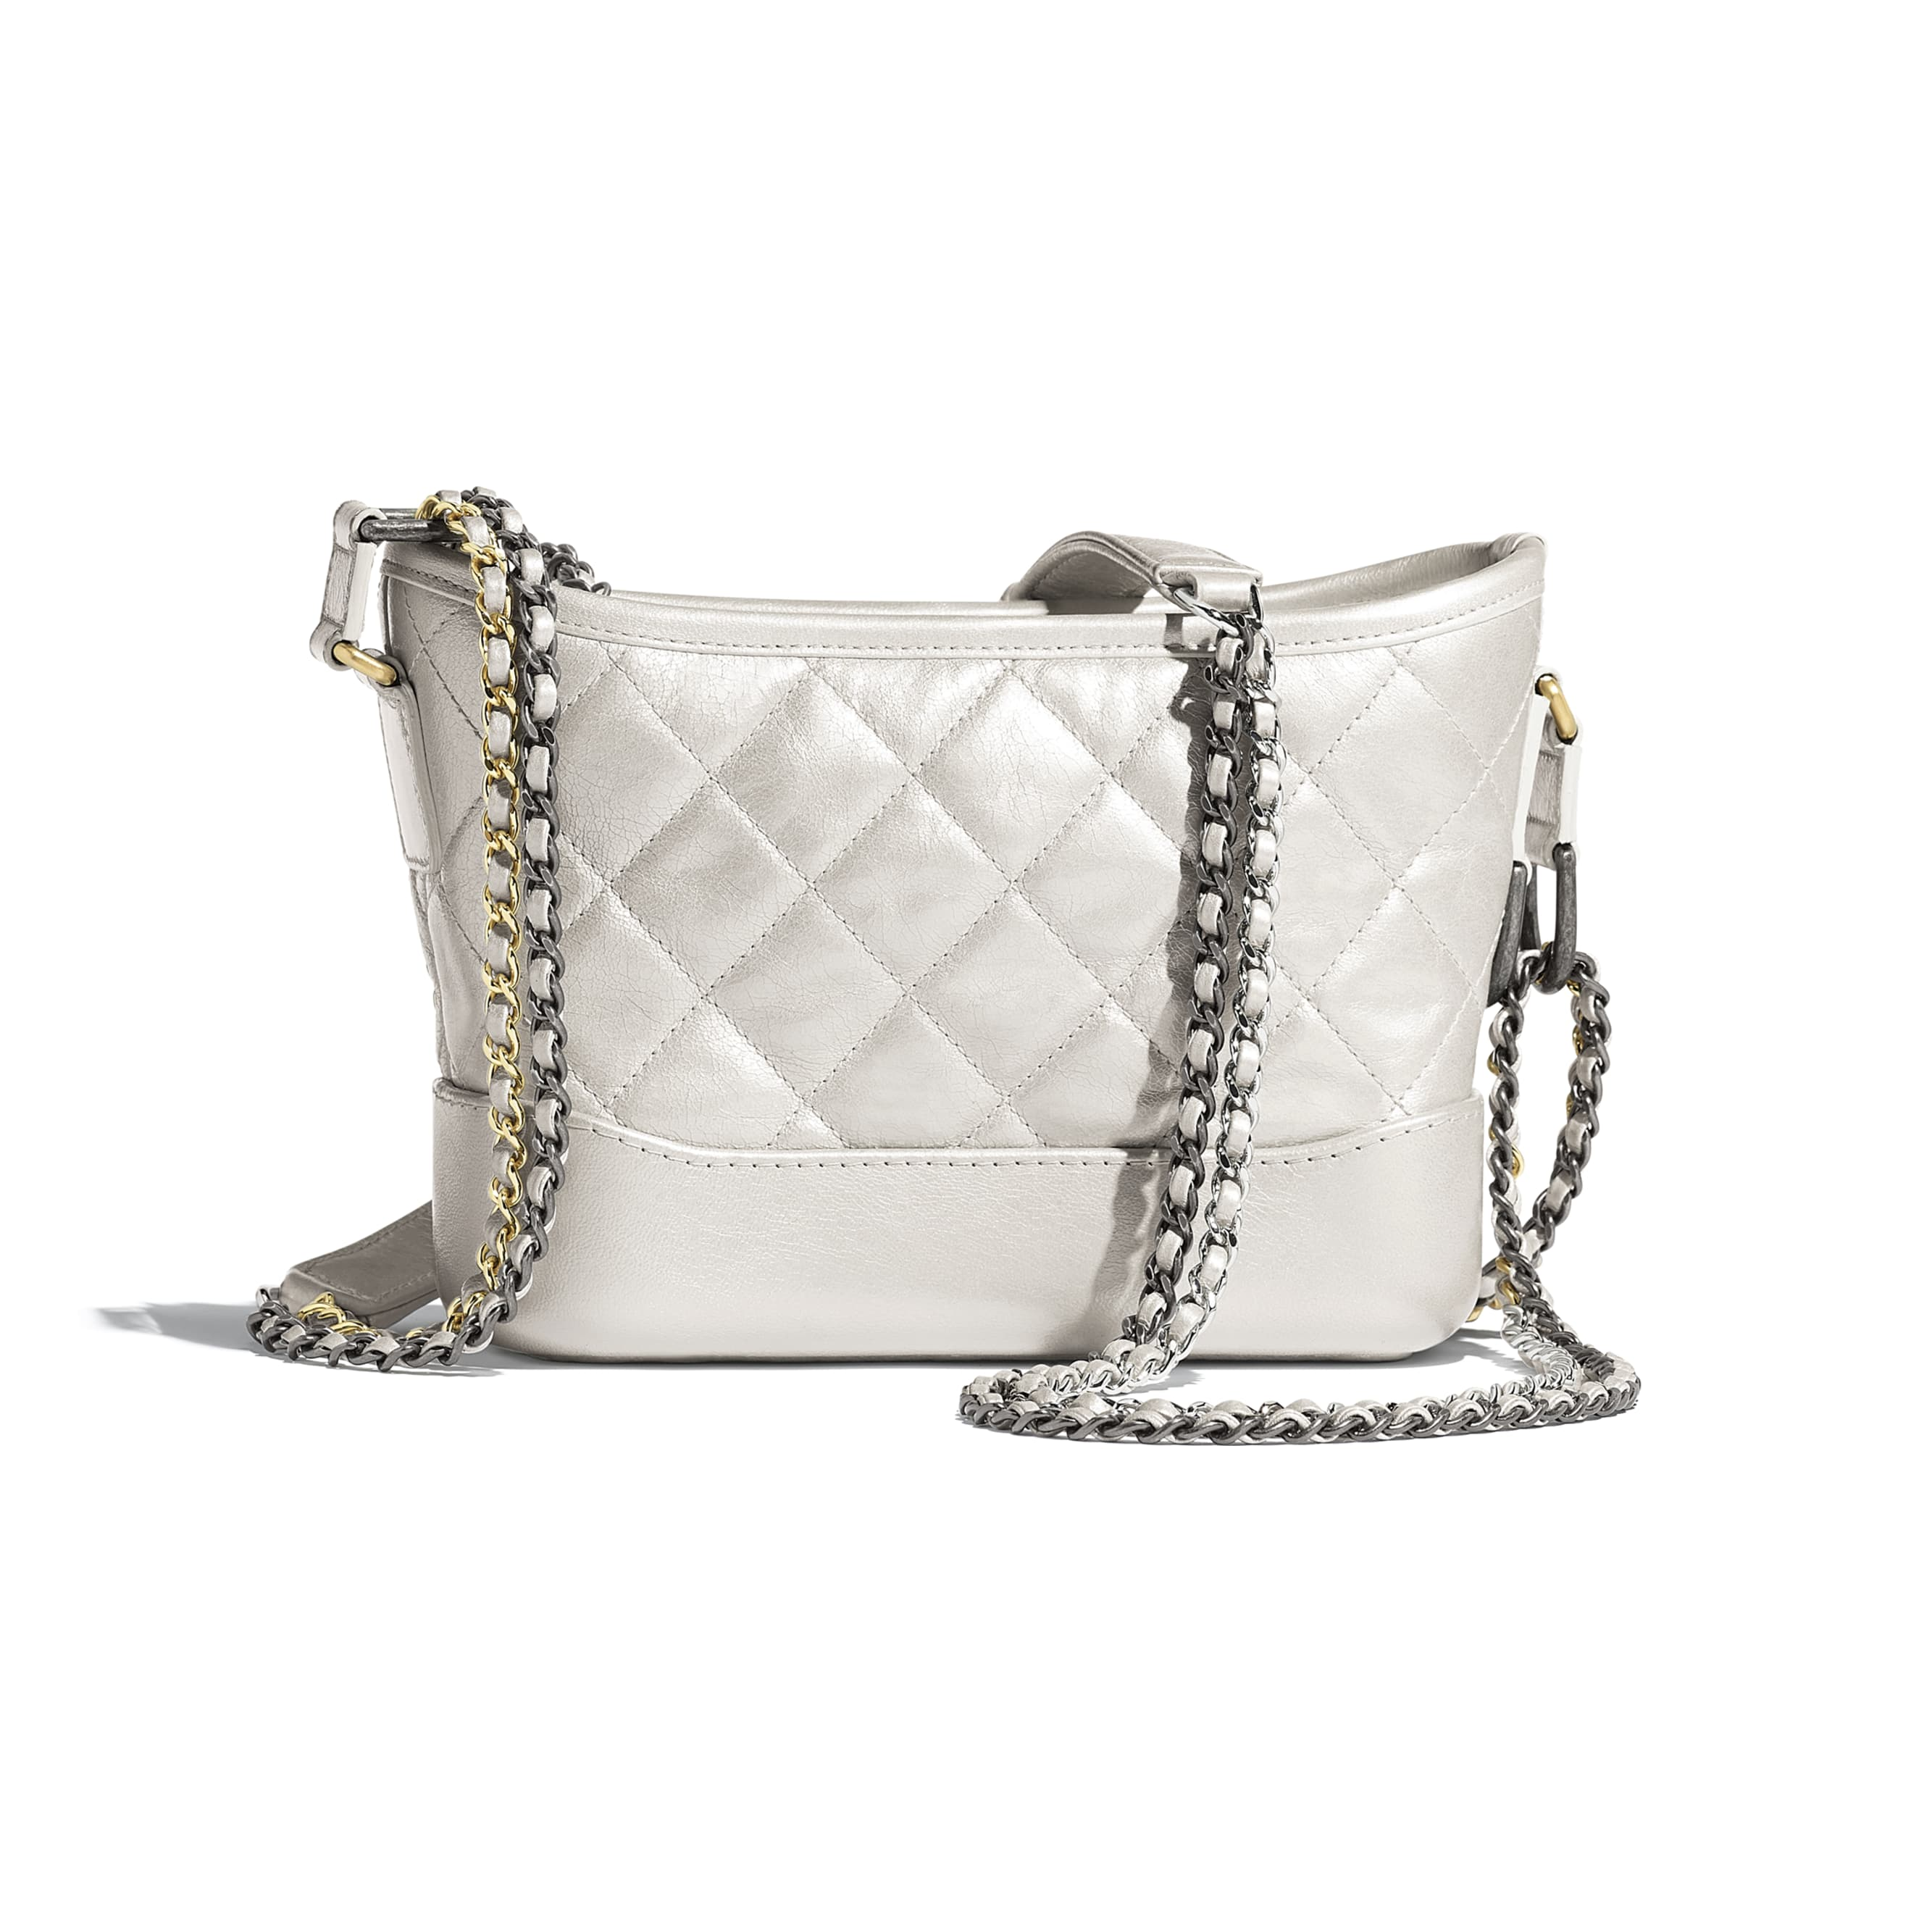 CHANEL'S GABRIELLE Small Hobo Bag - Silver - Metallic Crumpled Lambskin, Calfskin, Gold-Tone & Silver-Tone Metal - CHANEL - Alternative view - see standard sized version